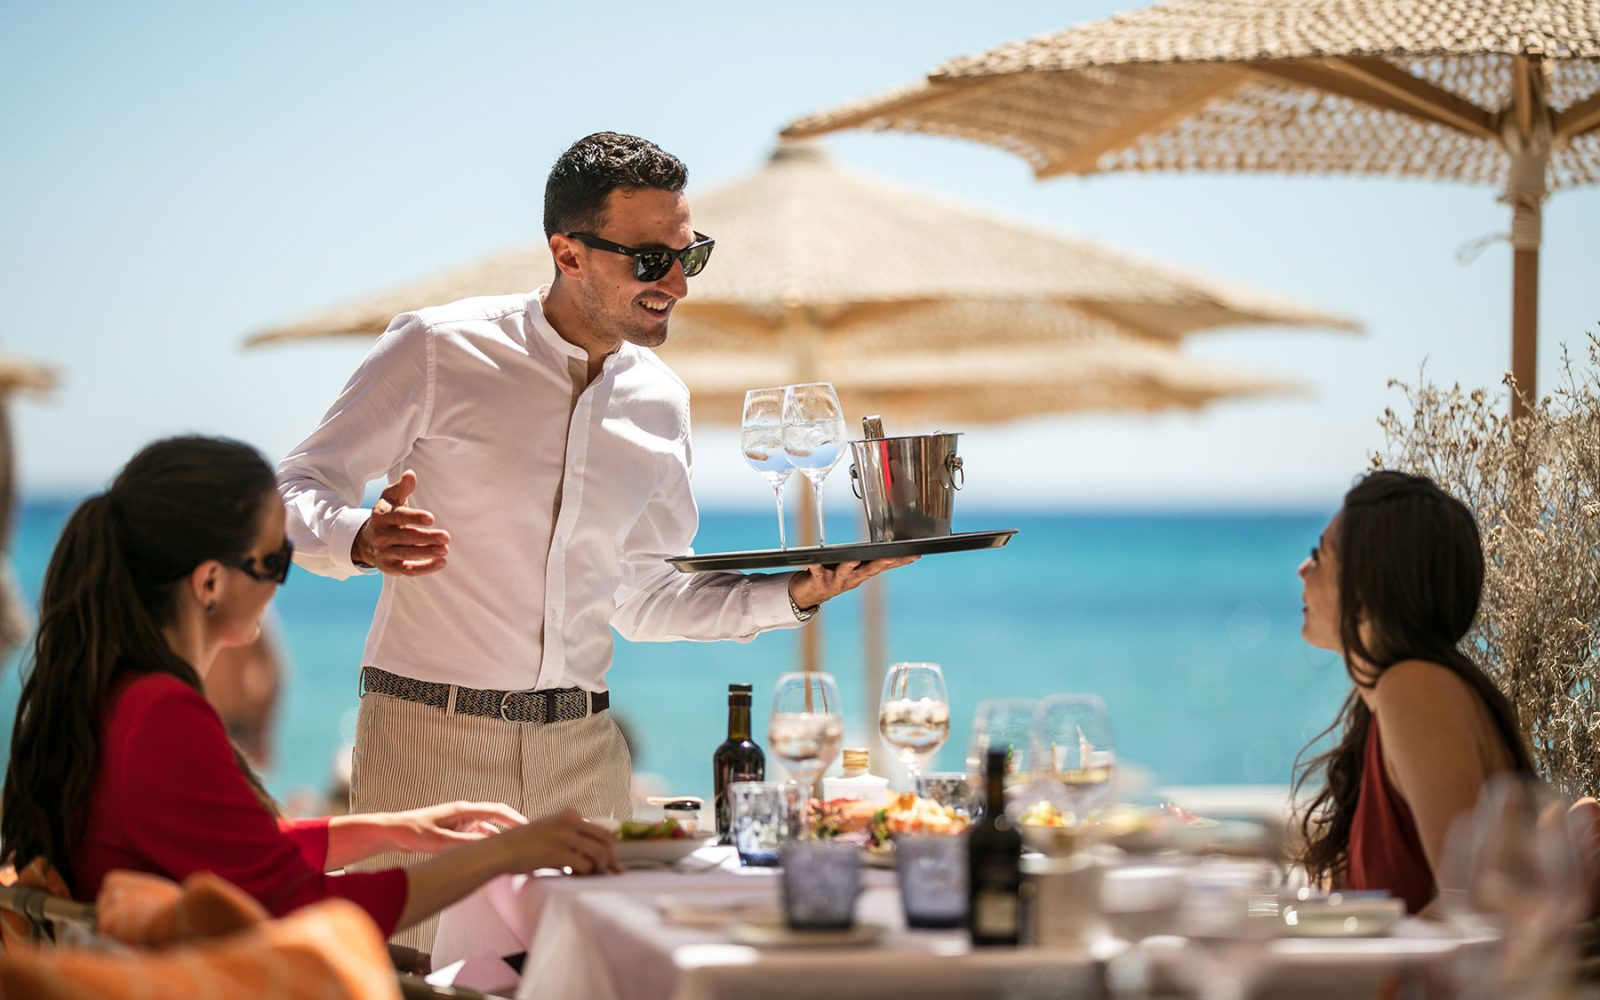 Byblos Beach, the private beach of the Byblos Saint-Tropez hotel